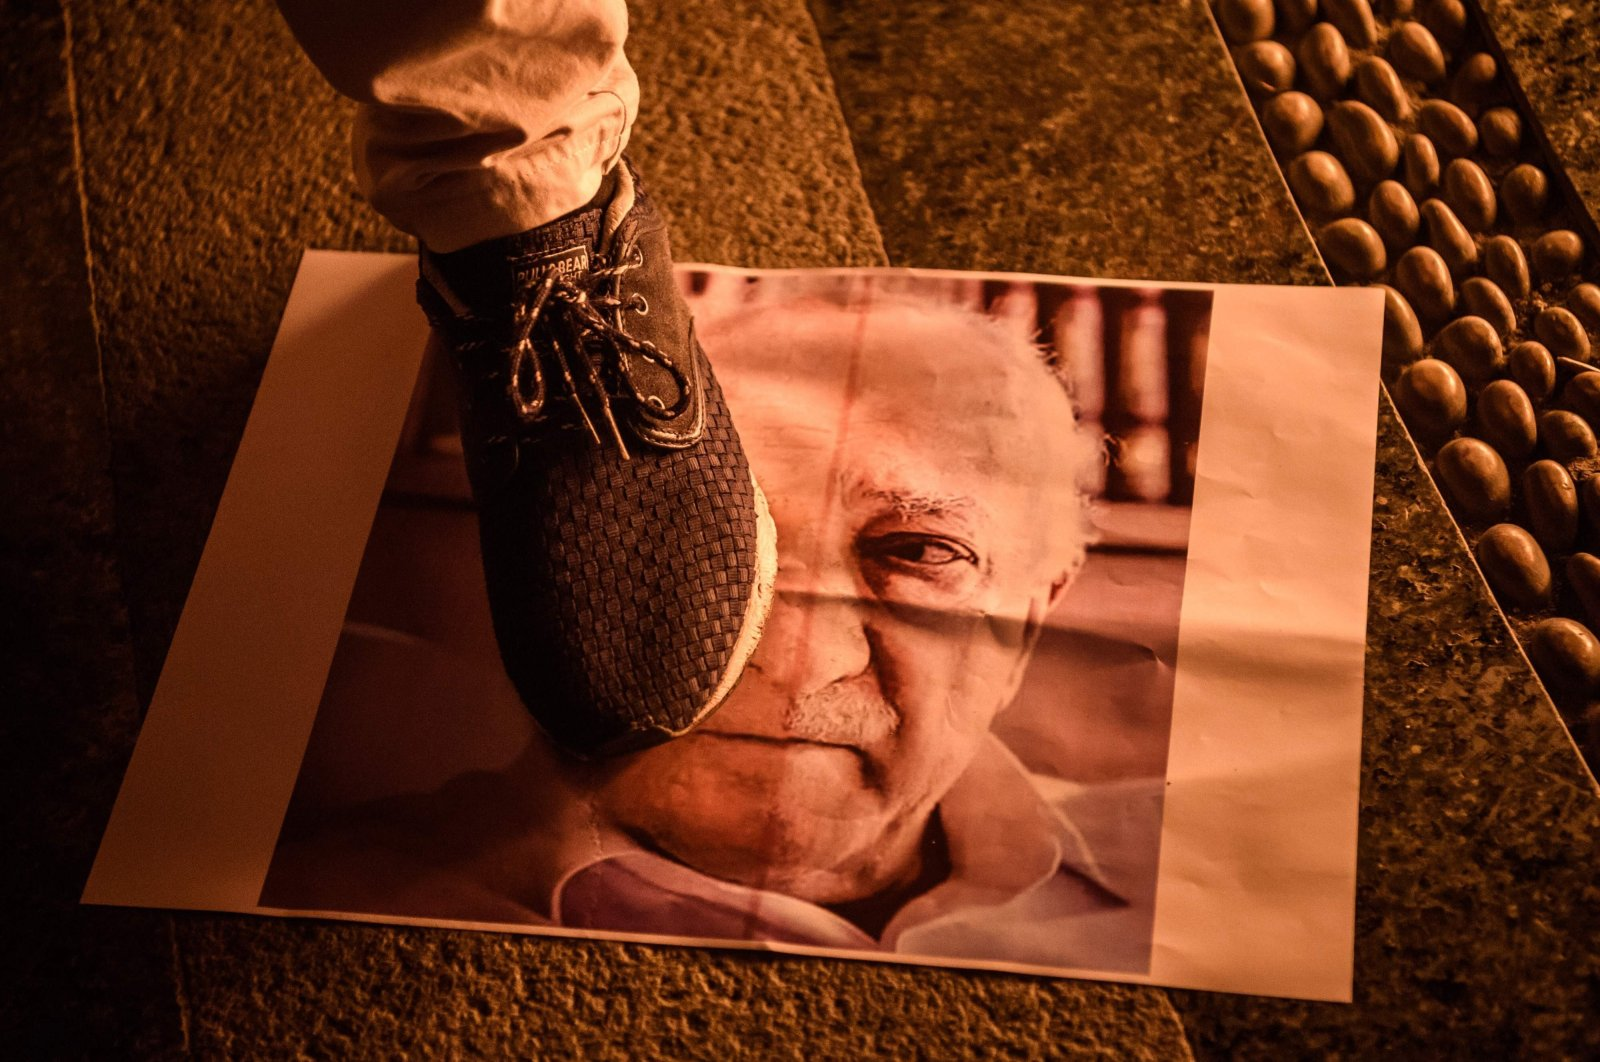 A protester walks on a poster of FETÖ leader Fetullah Gülen in a rally to condemn FETÖ's coup attempt, in Istanbul, Turkey, July 18, 2016. (AFP PHOTO)